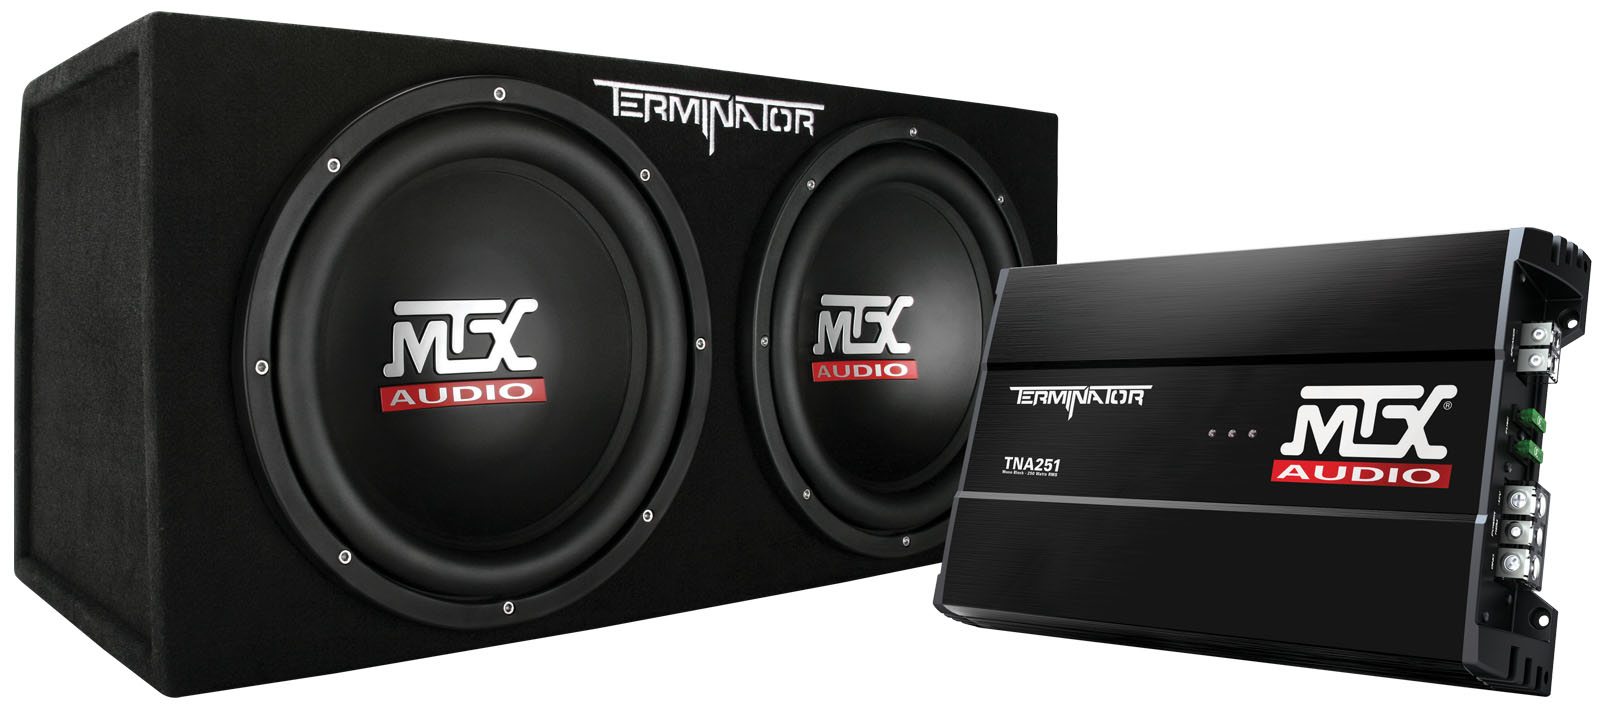 Terminator Tnp212d2 Dual 12 Inch 400w Rms Sealed Enclosure And Mono Subwoofer Amplifier Wiring Diagrams Picture Of Block